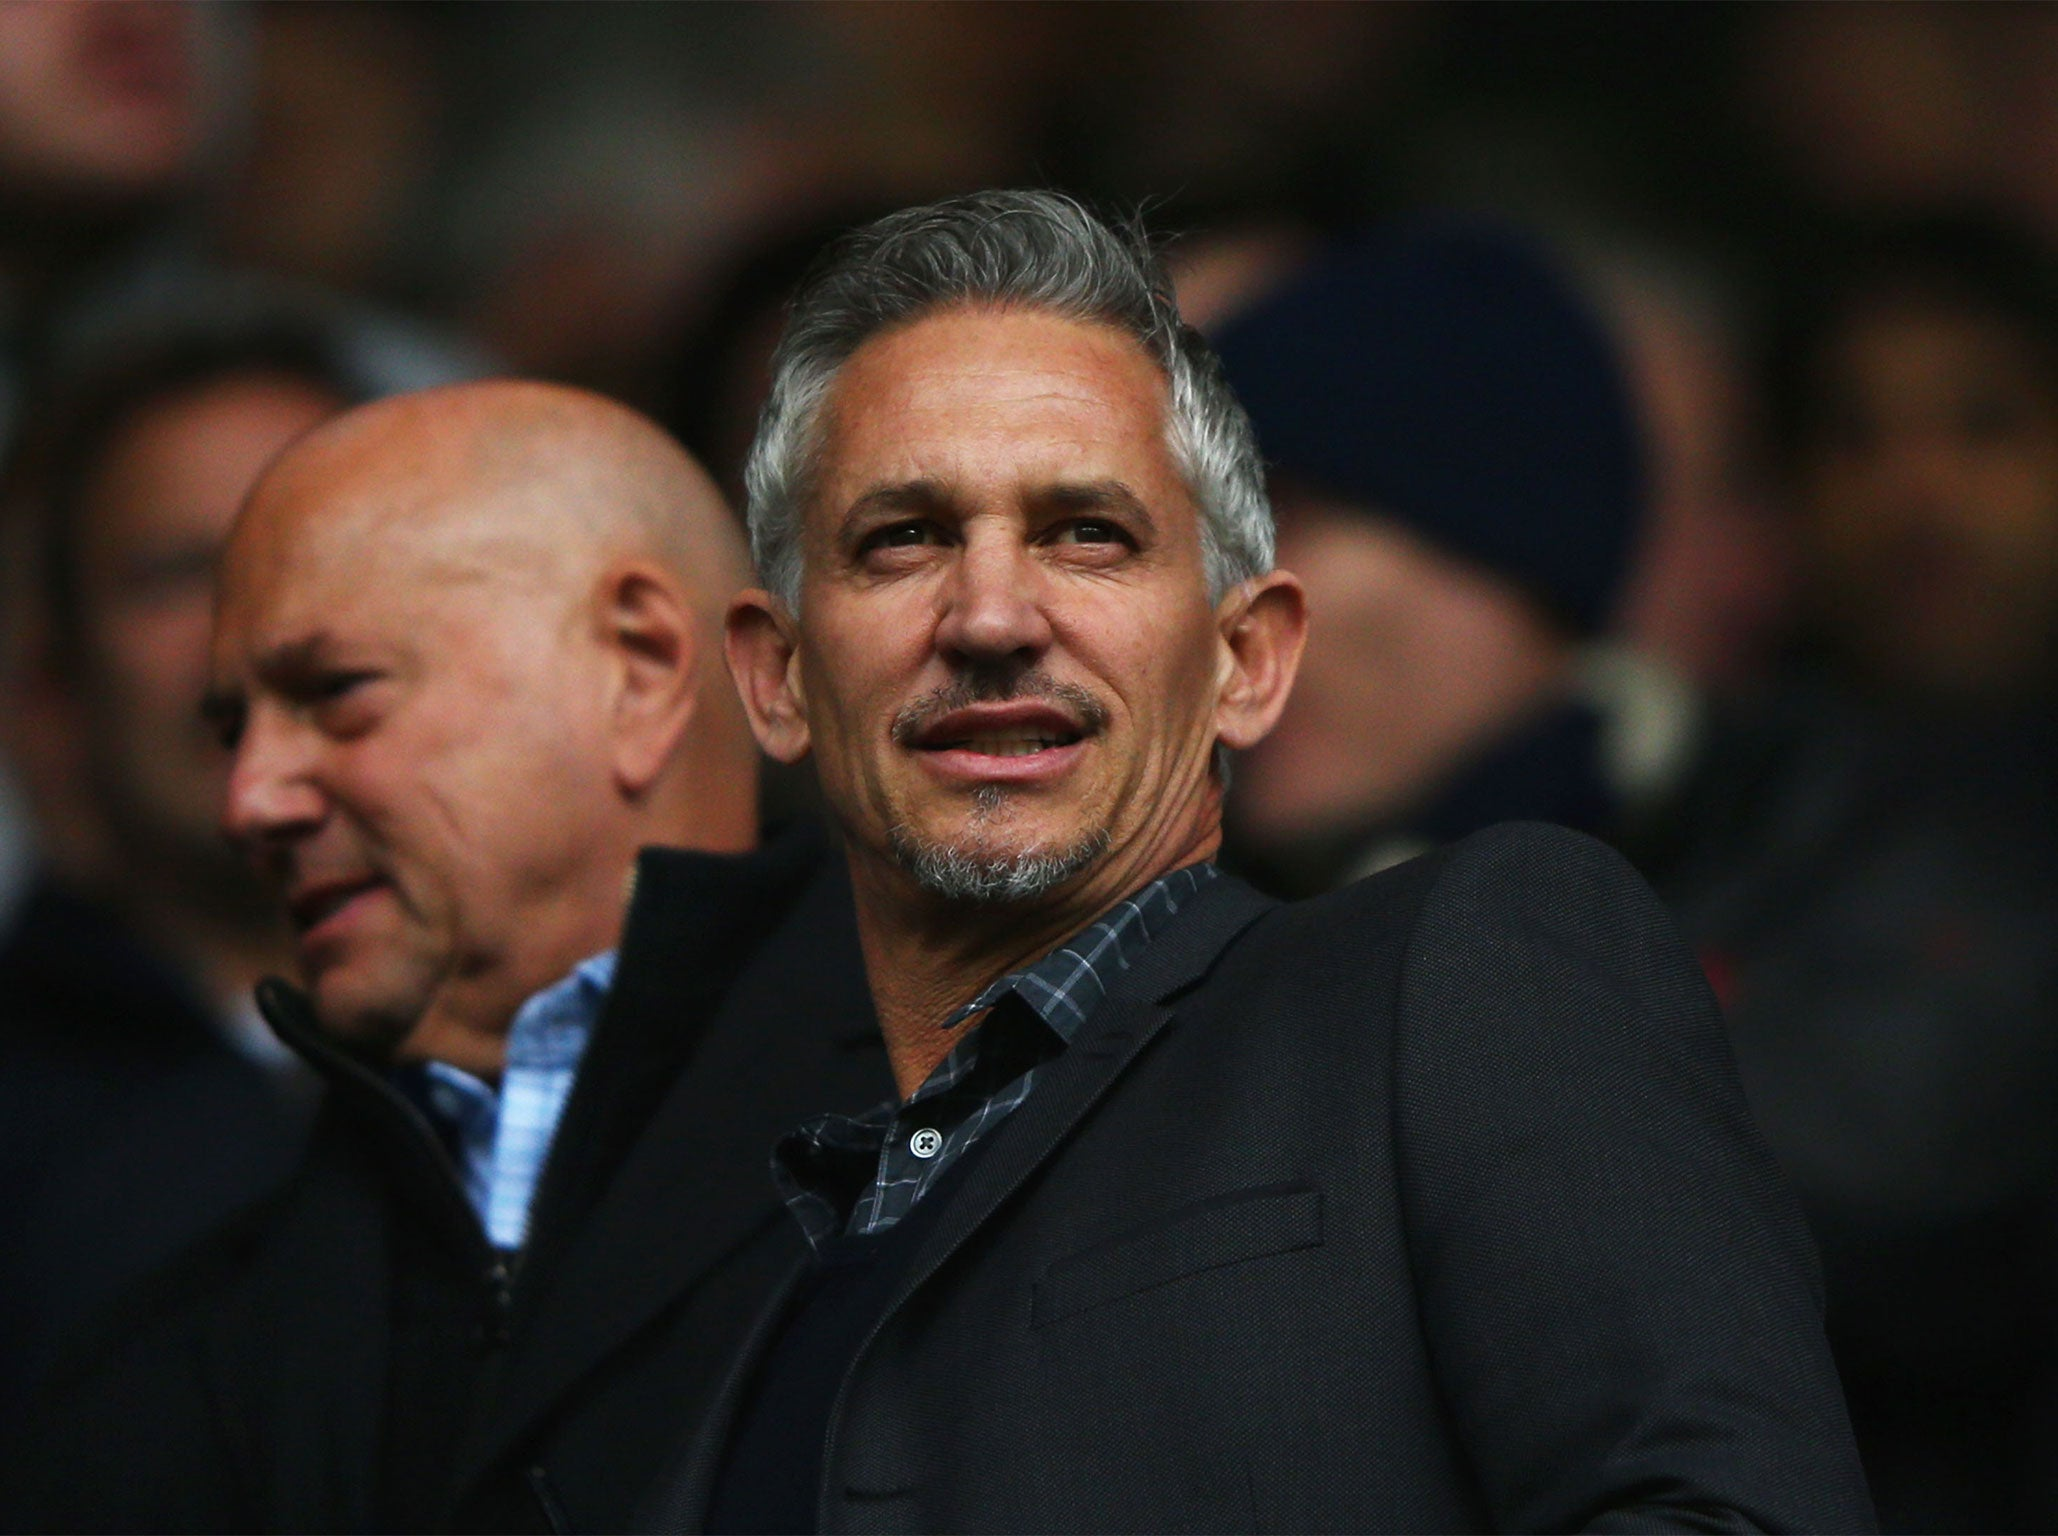 At home with Gary Lineker: Exclusive interview on Brexit, press regulation and haunting dreams of white coffins